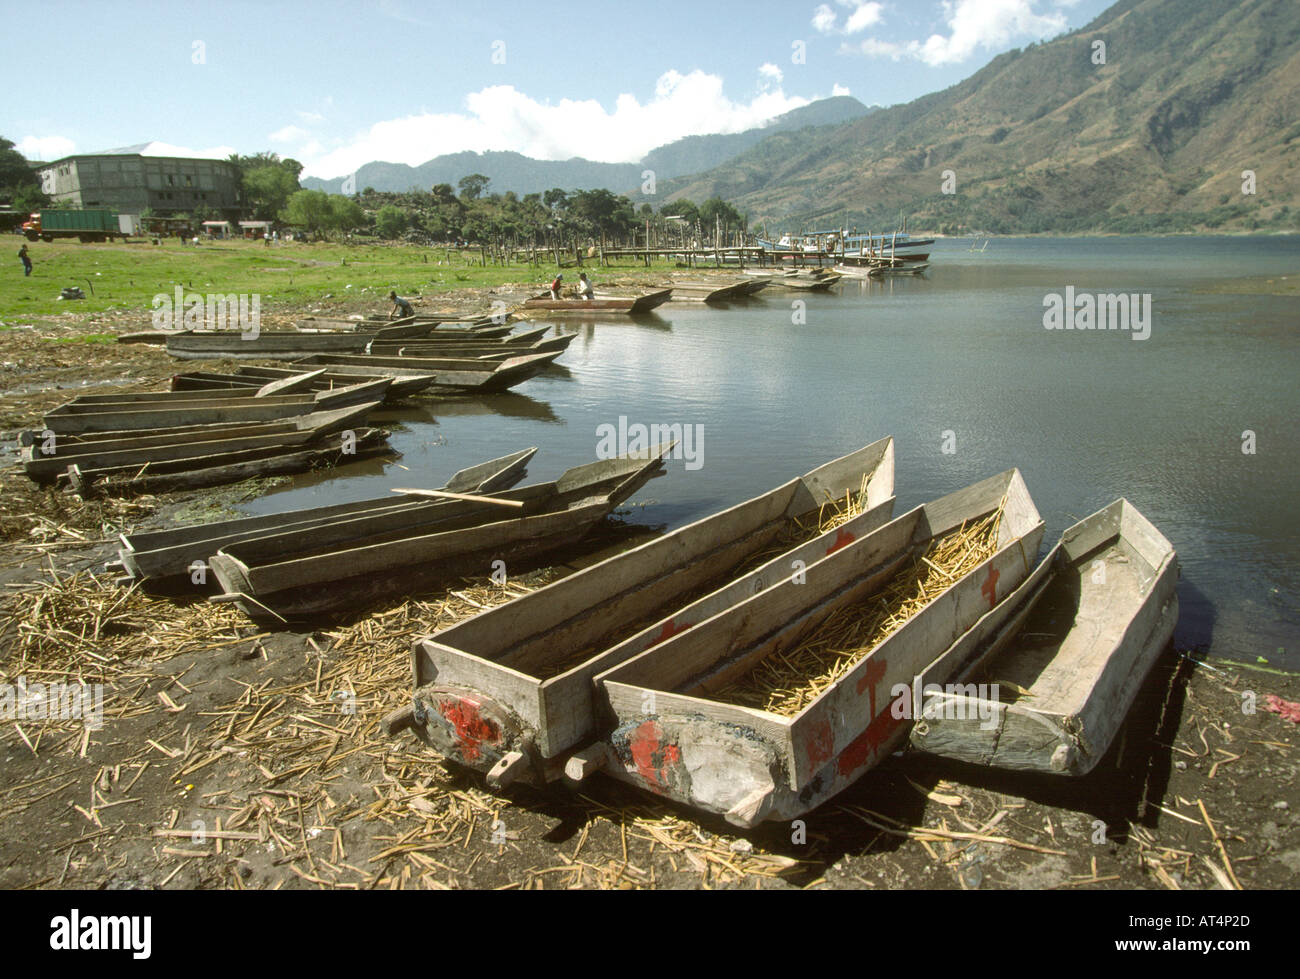 Guatemala Santiago Atitlan Fishing boats on Lake Atitlan shore - Stock Image